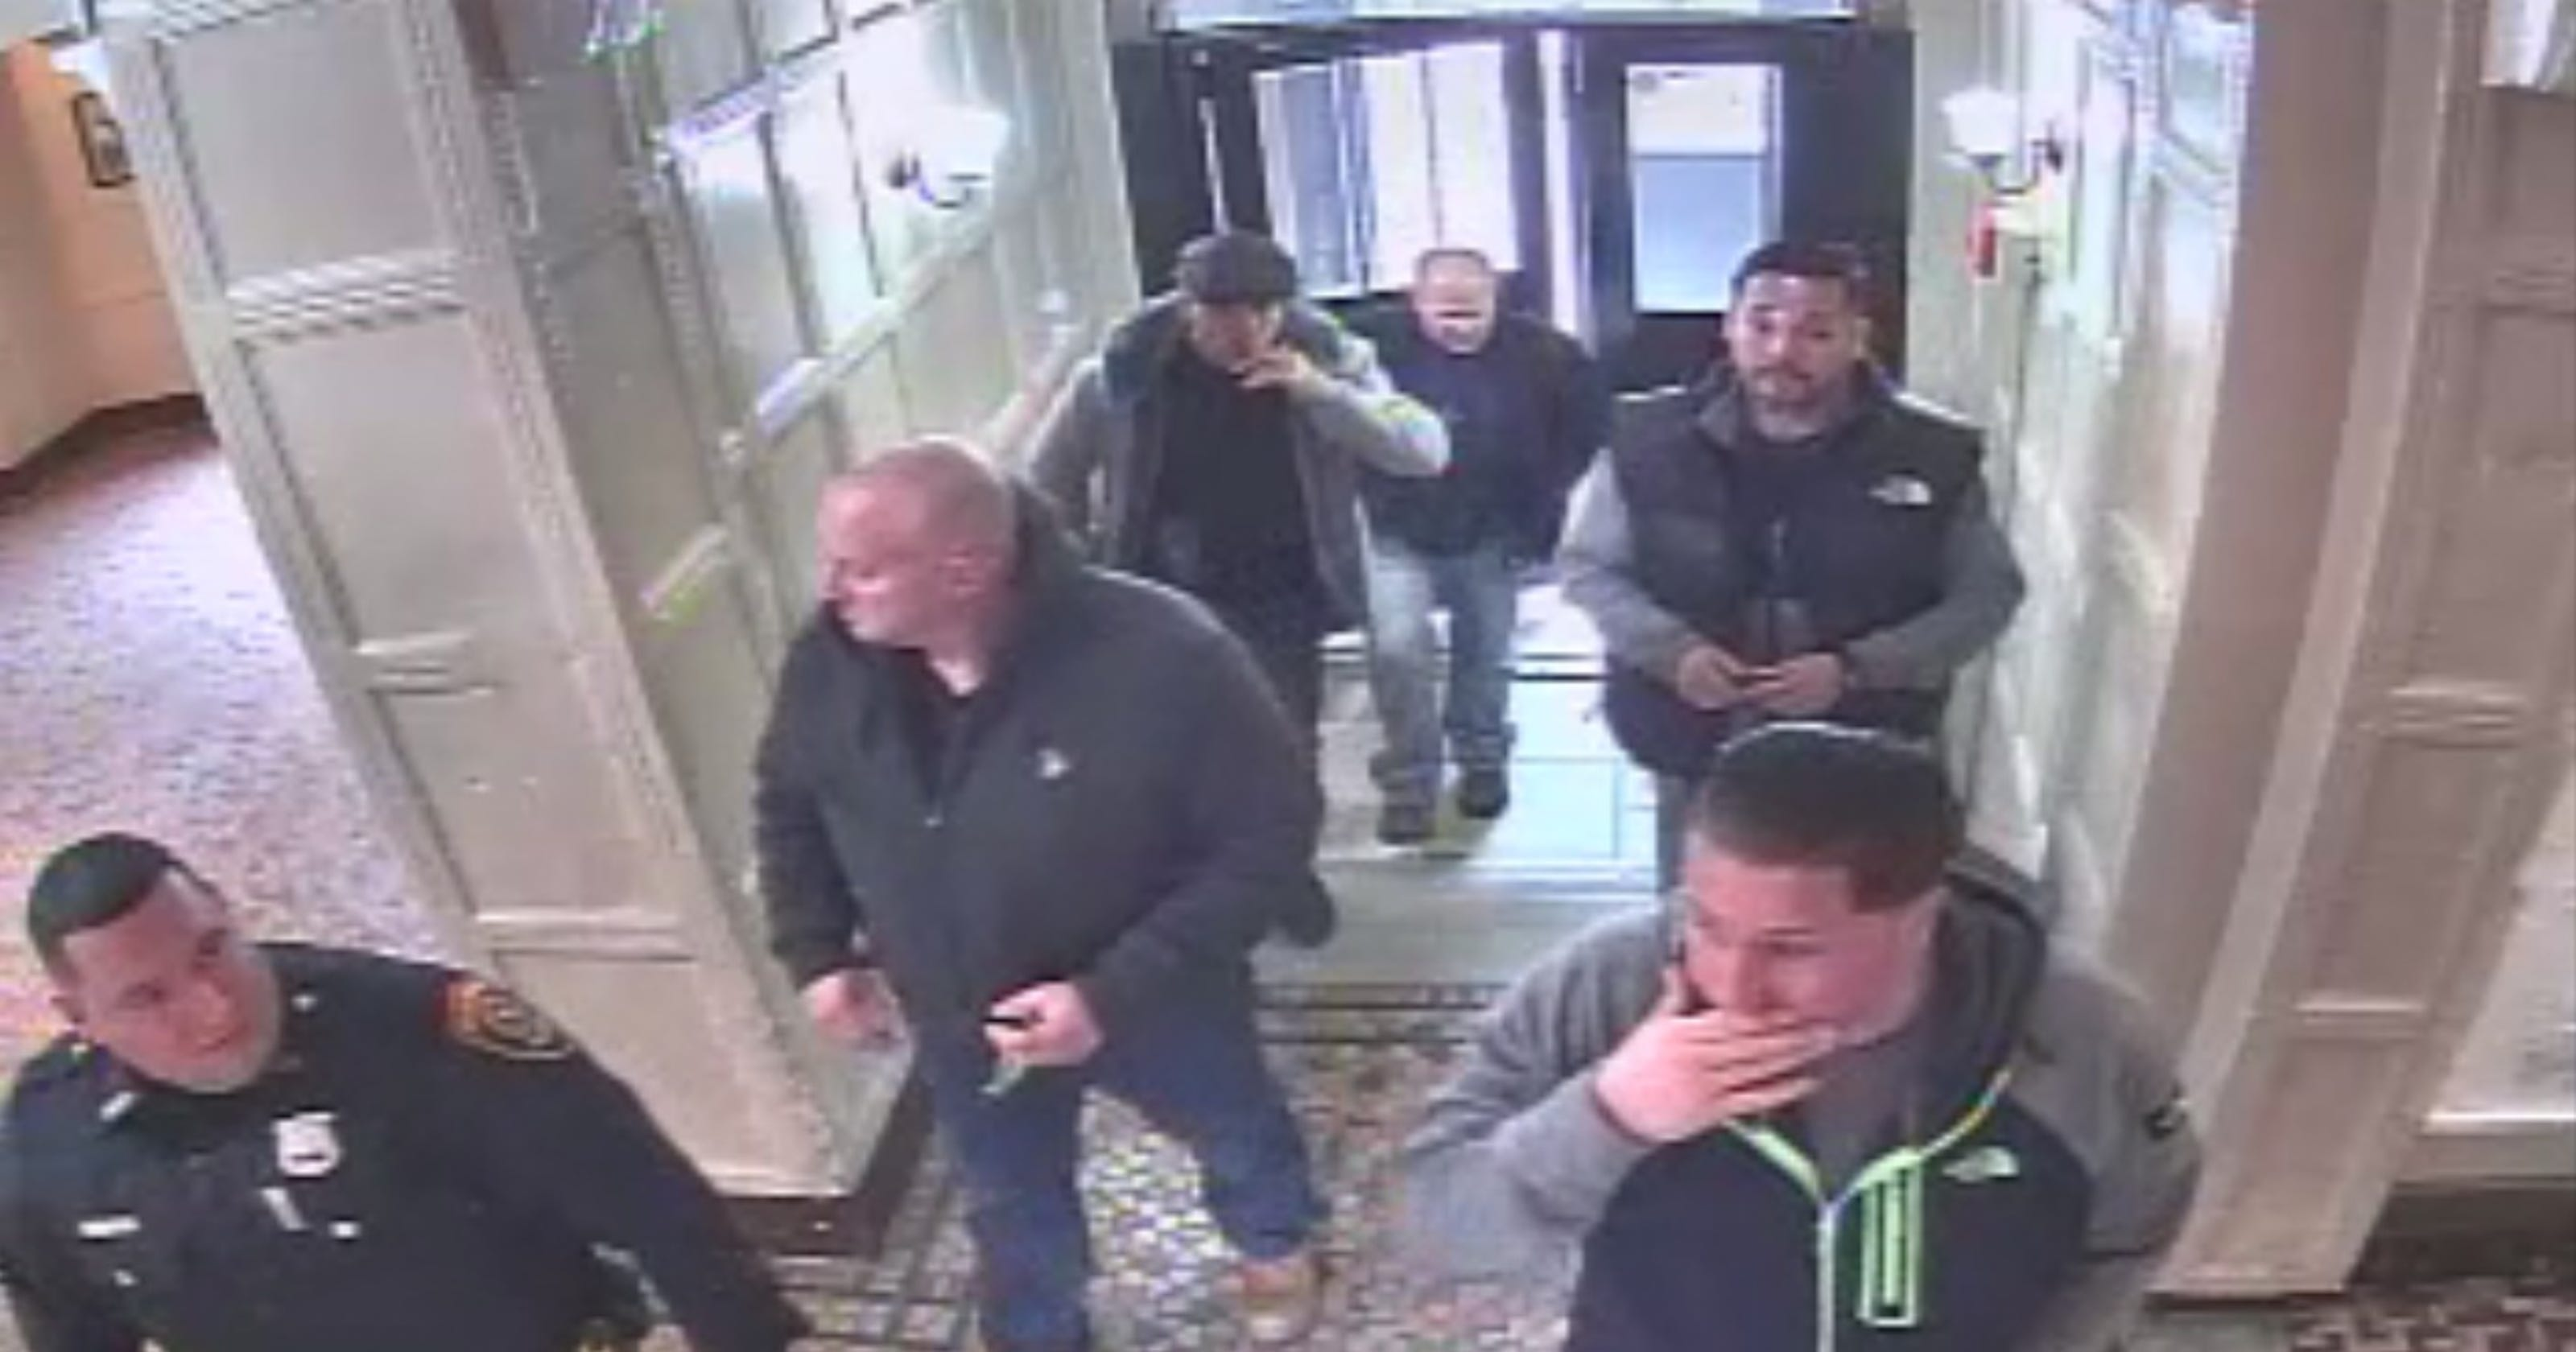 Video: Hackensack officers on video appear to break into apartment